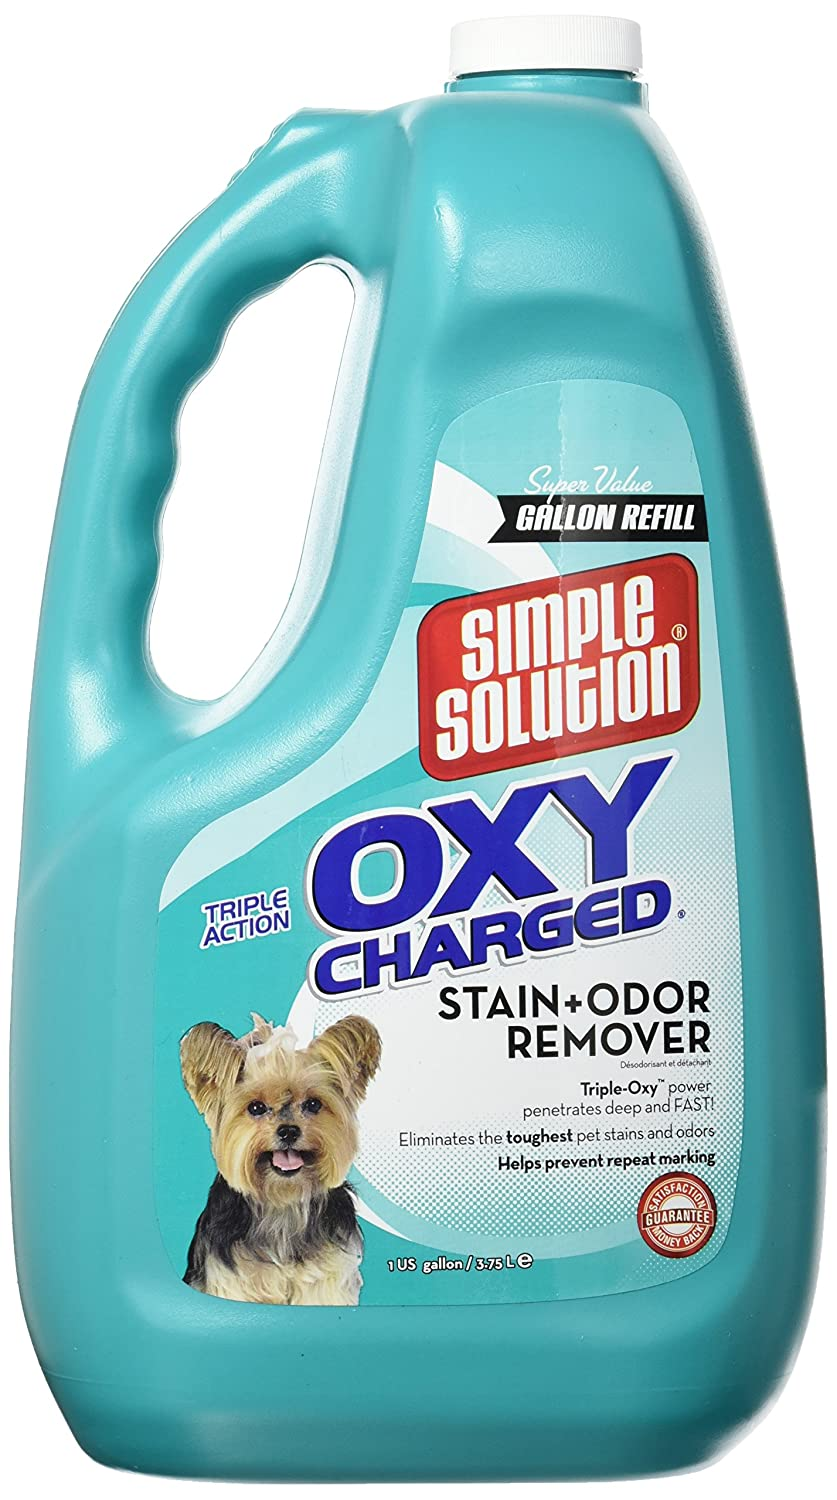 Simple Solution Oxy Charged Stain & Odor Remover -Gallon